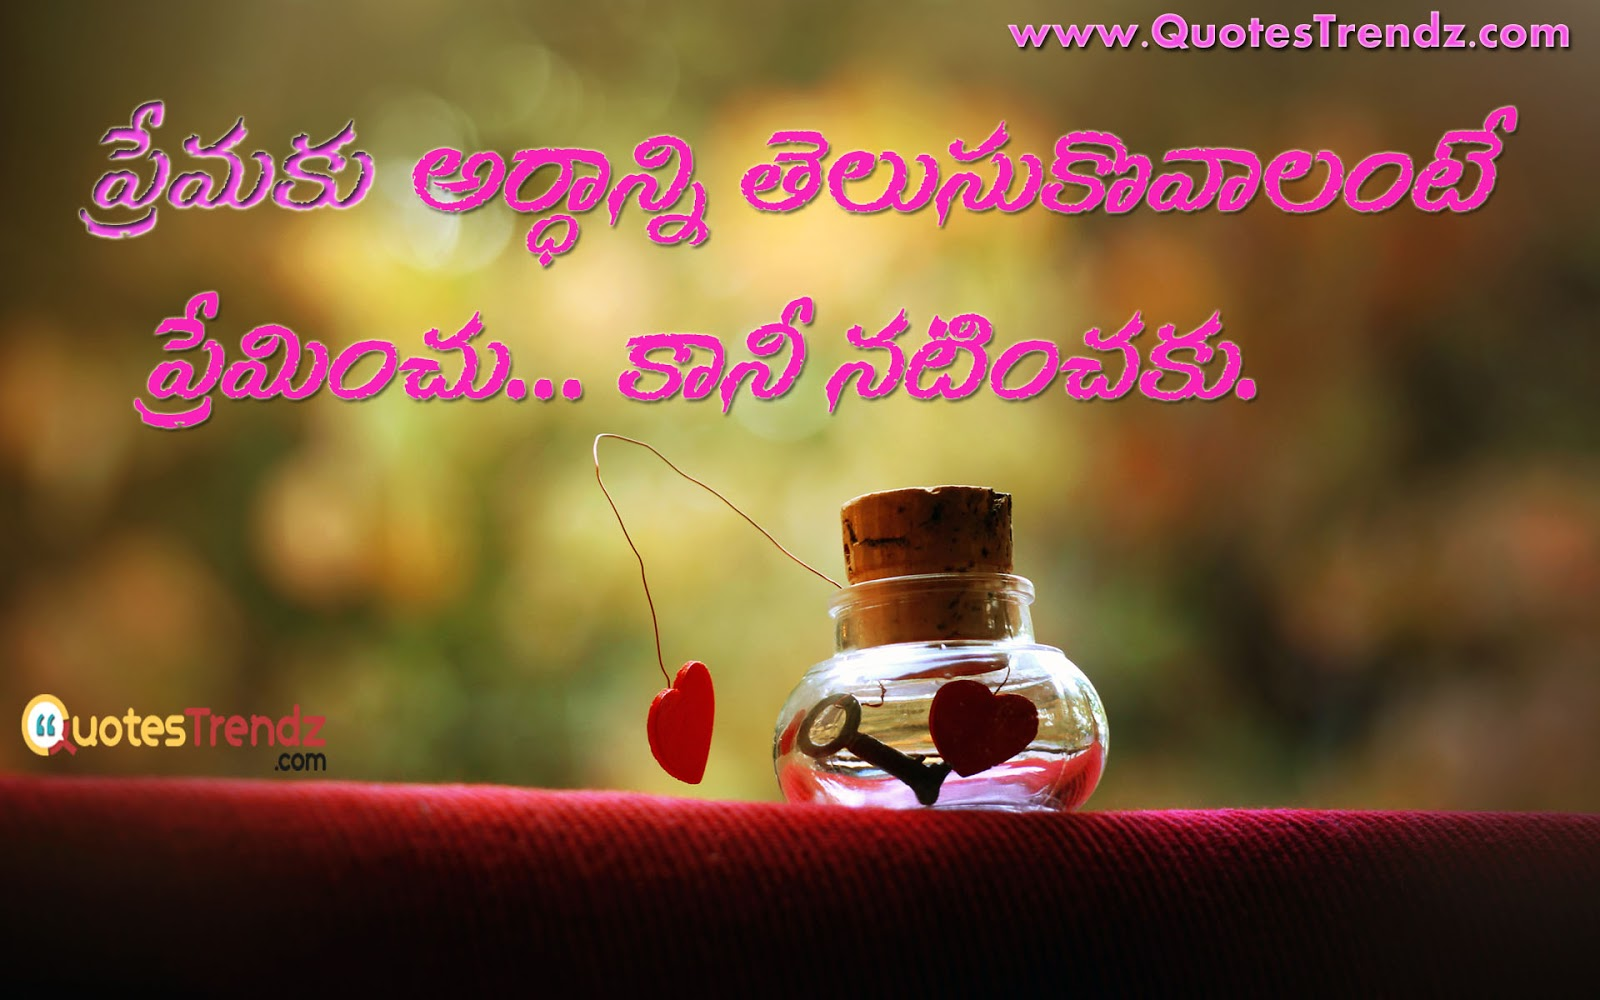 Telugu Love Quotes Amusing Telugu Love Quotes  Quotestrendz